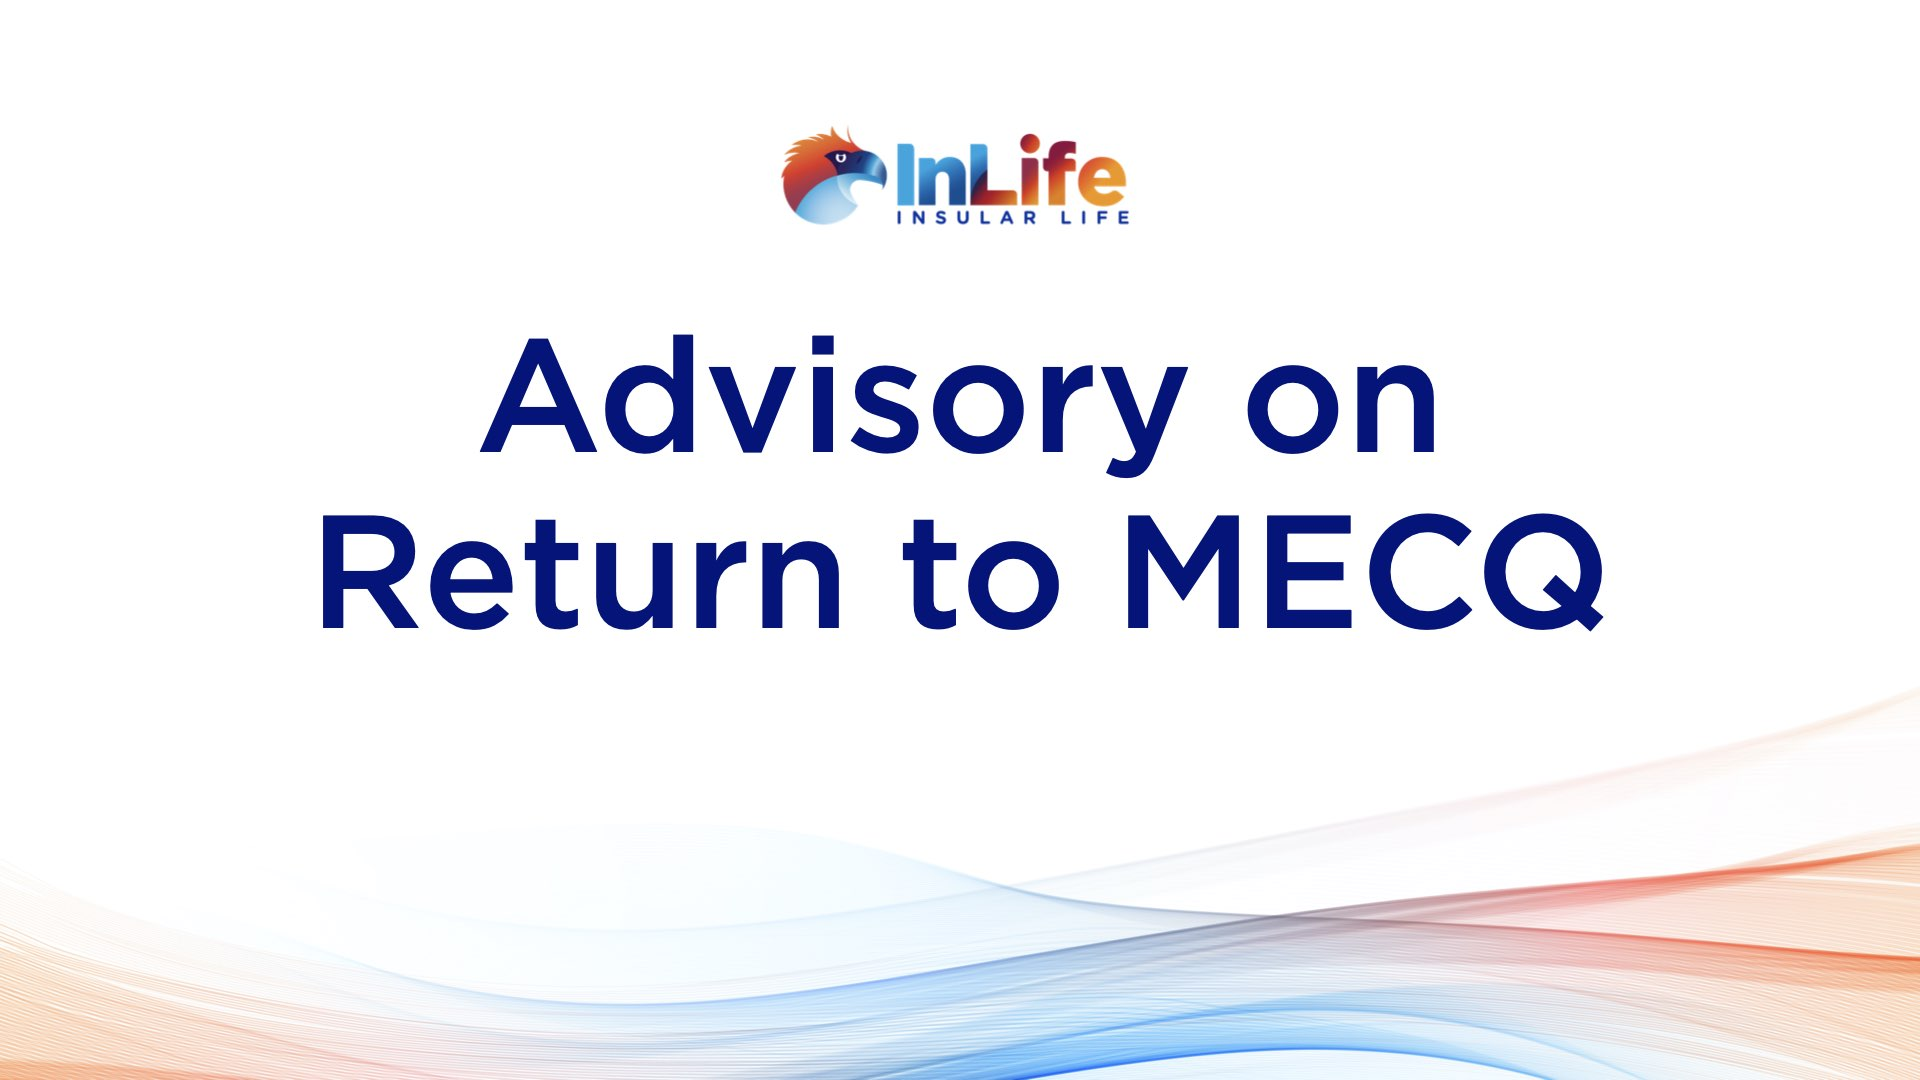 InLife Advisory on Return to MECQ of NCR and Nearby Provinces